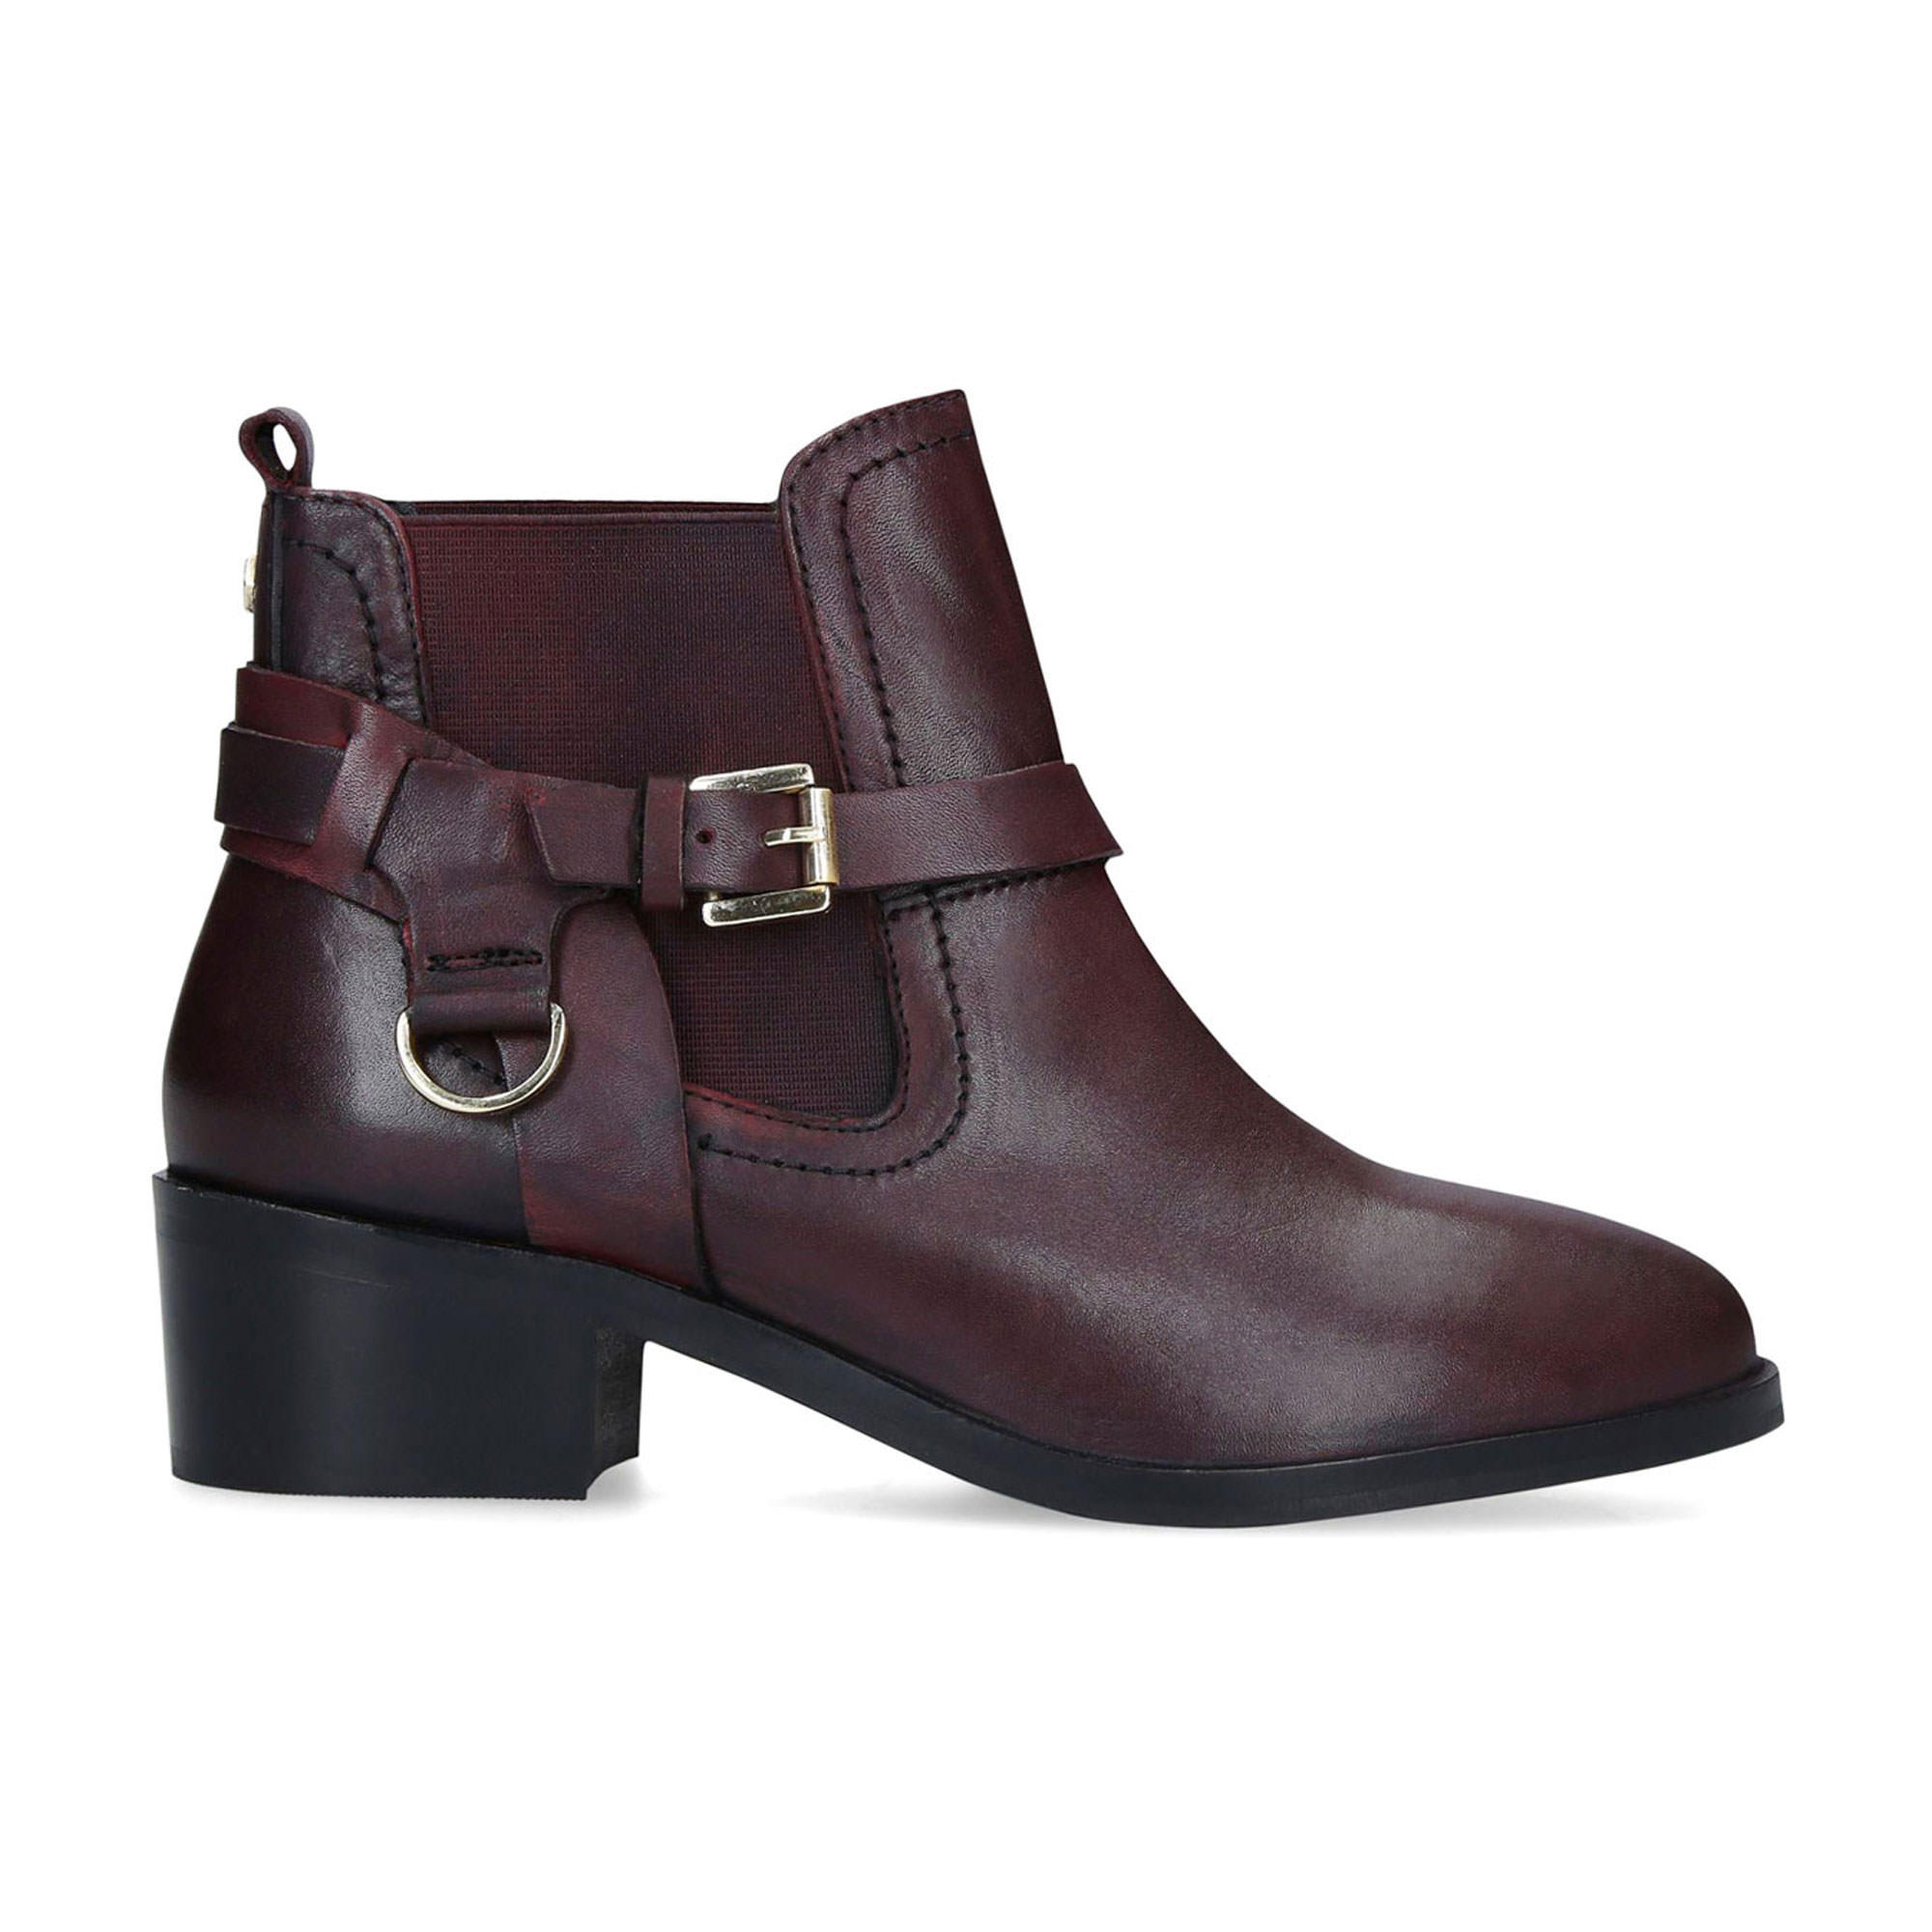 5059093737312: Saddles Ankle Boots